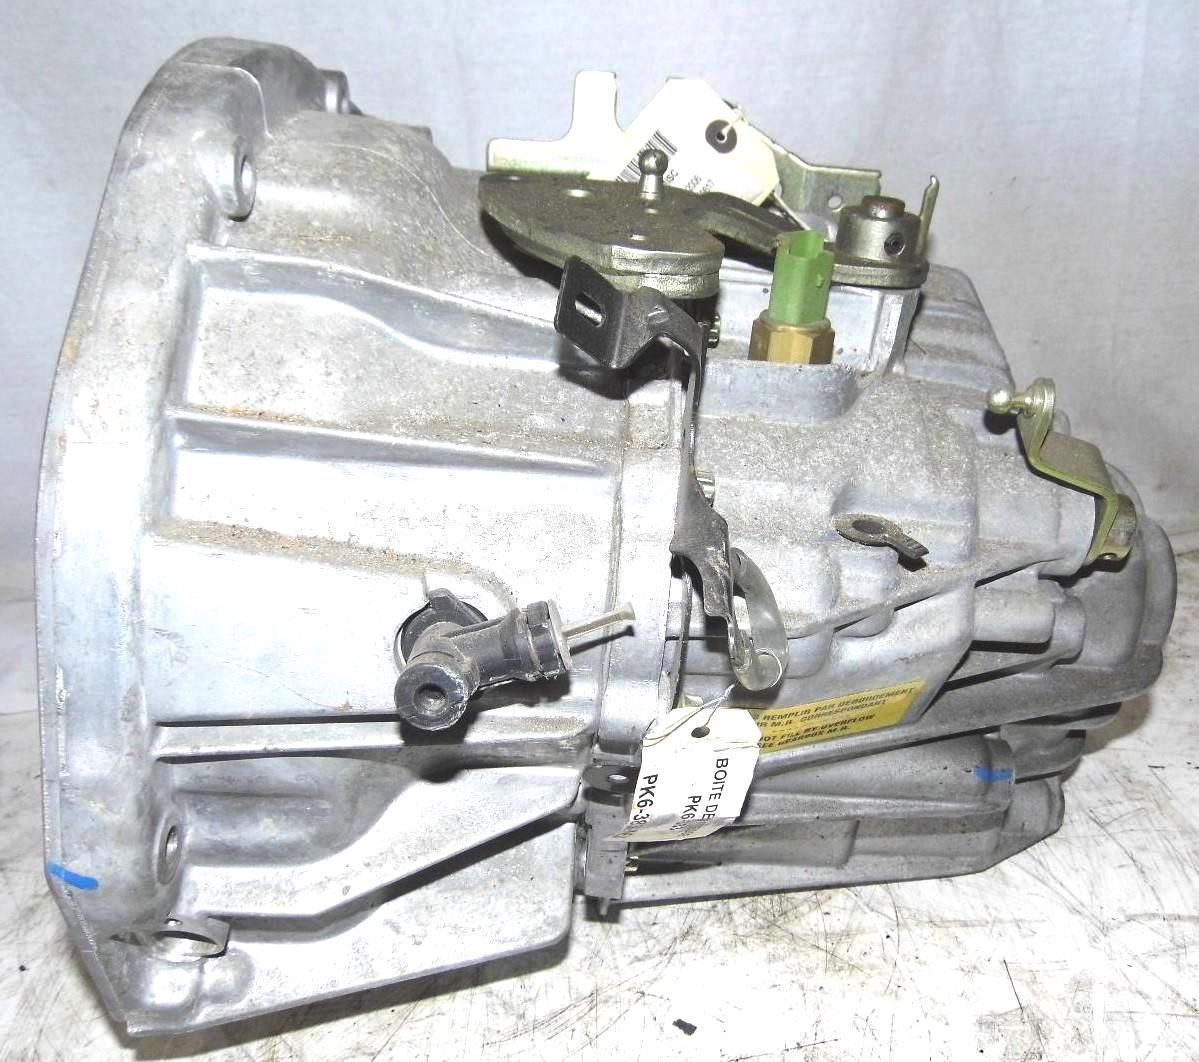 Brand New Renault Laguna Ii Dci Speed Manual Gearbox Pk B D P on Land Rover 4 6 Engine Specs